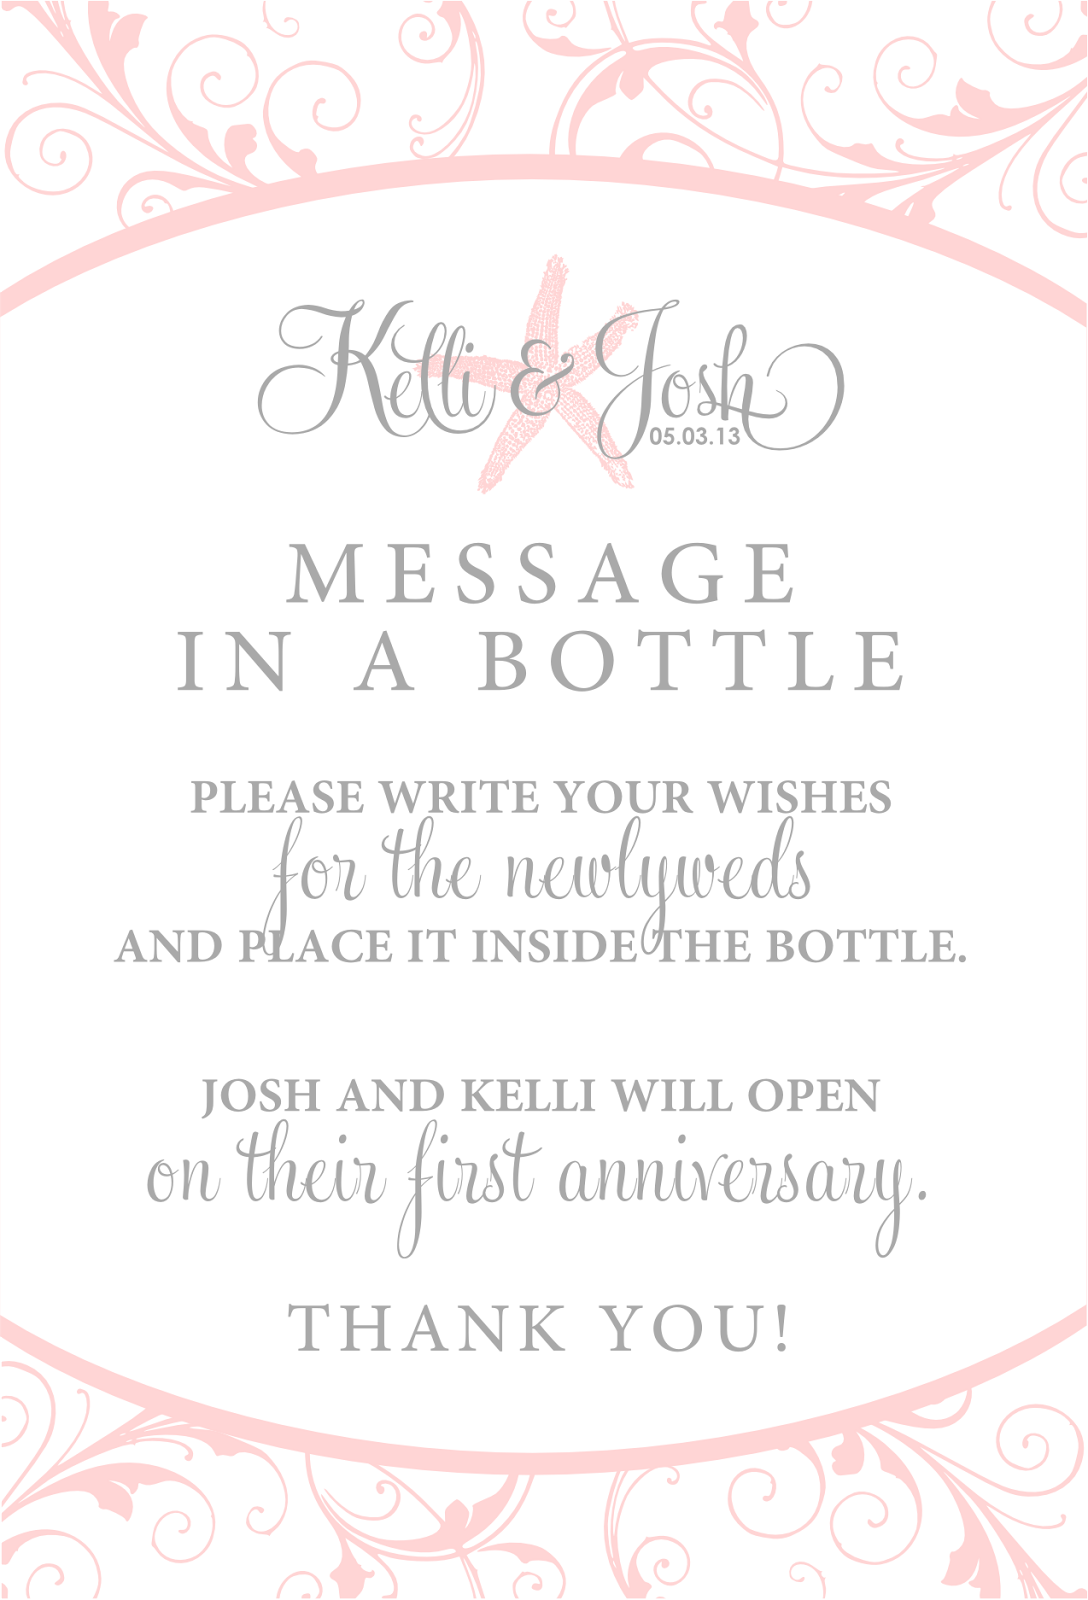 Signatures by sarah wedding stationery for kelli welcome letter template table numbers and a water bottle label the decor will be very soft and beautiful but still modern and memorable pronofoot35fo Gallery